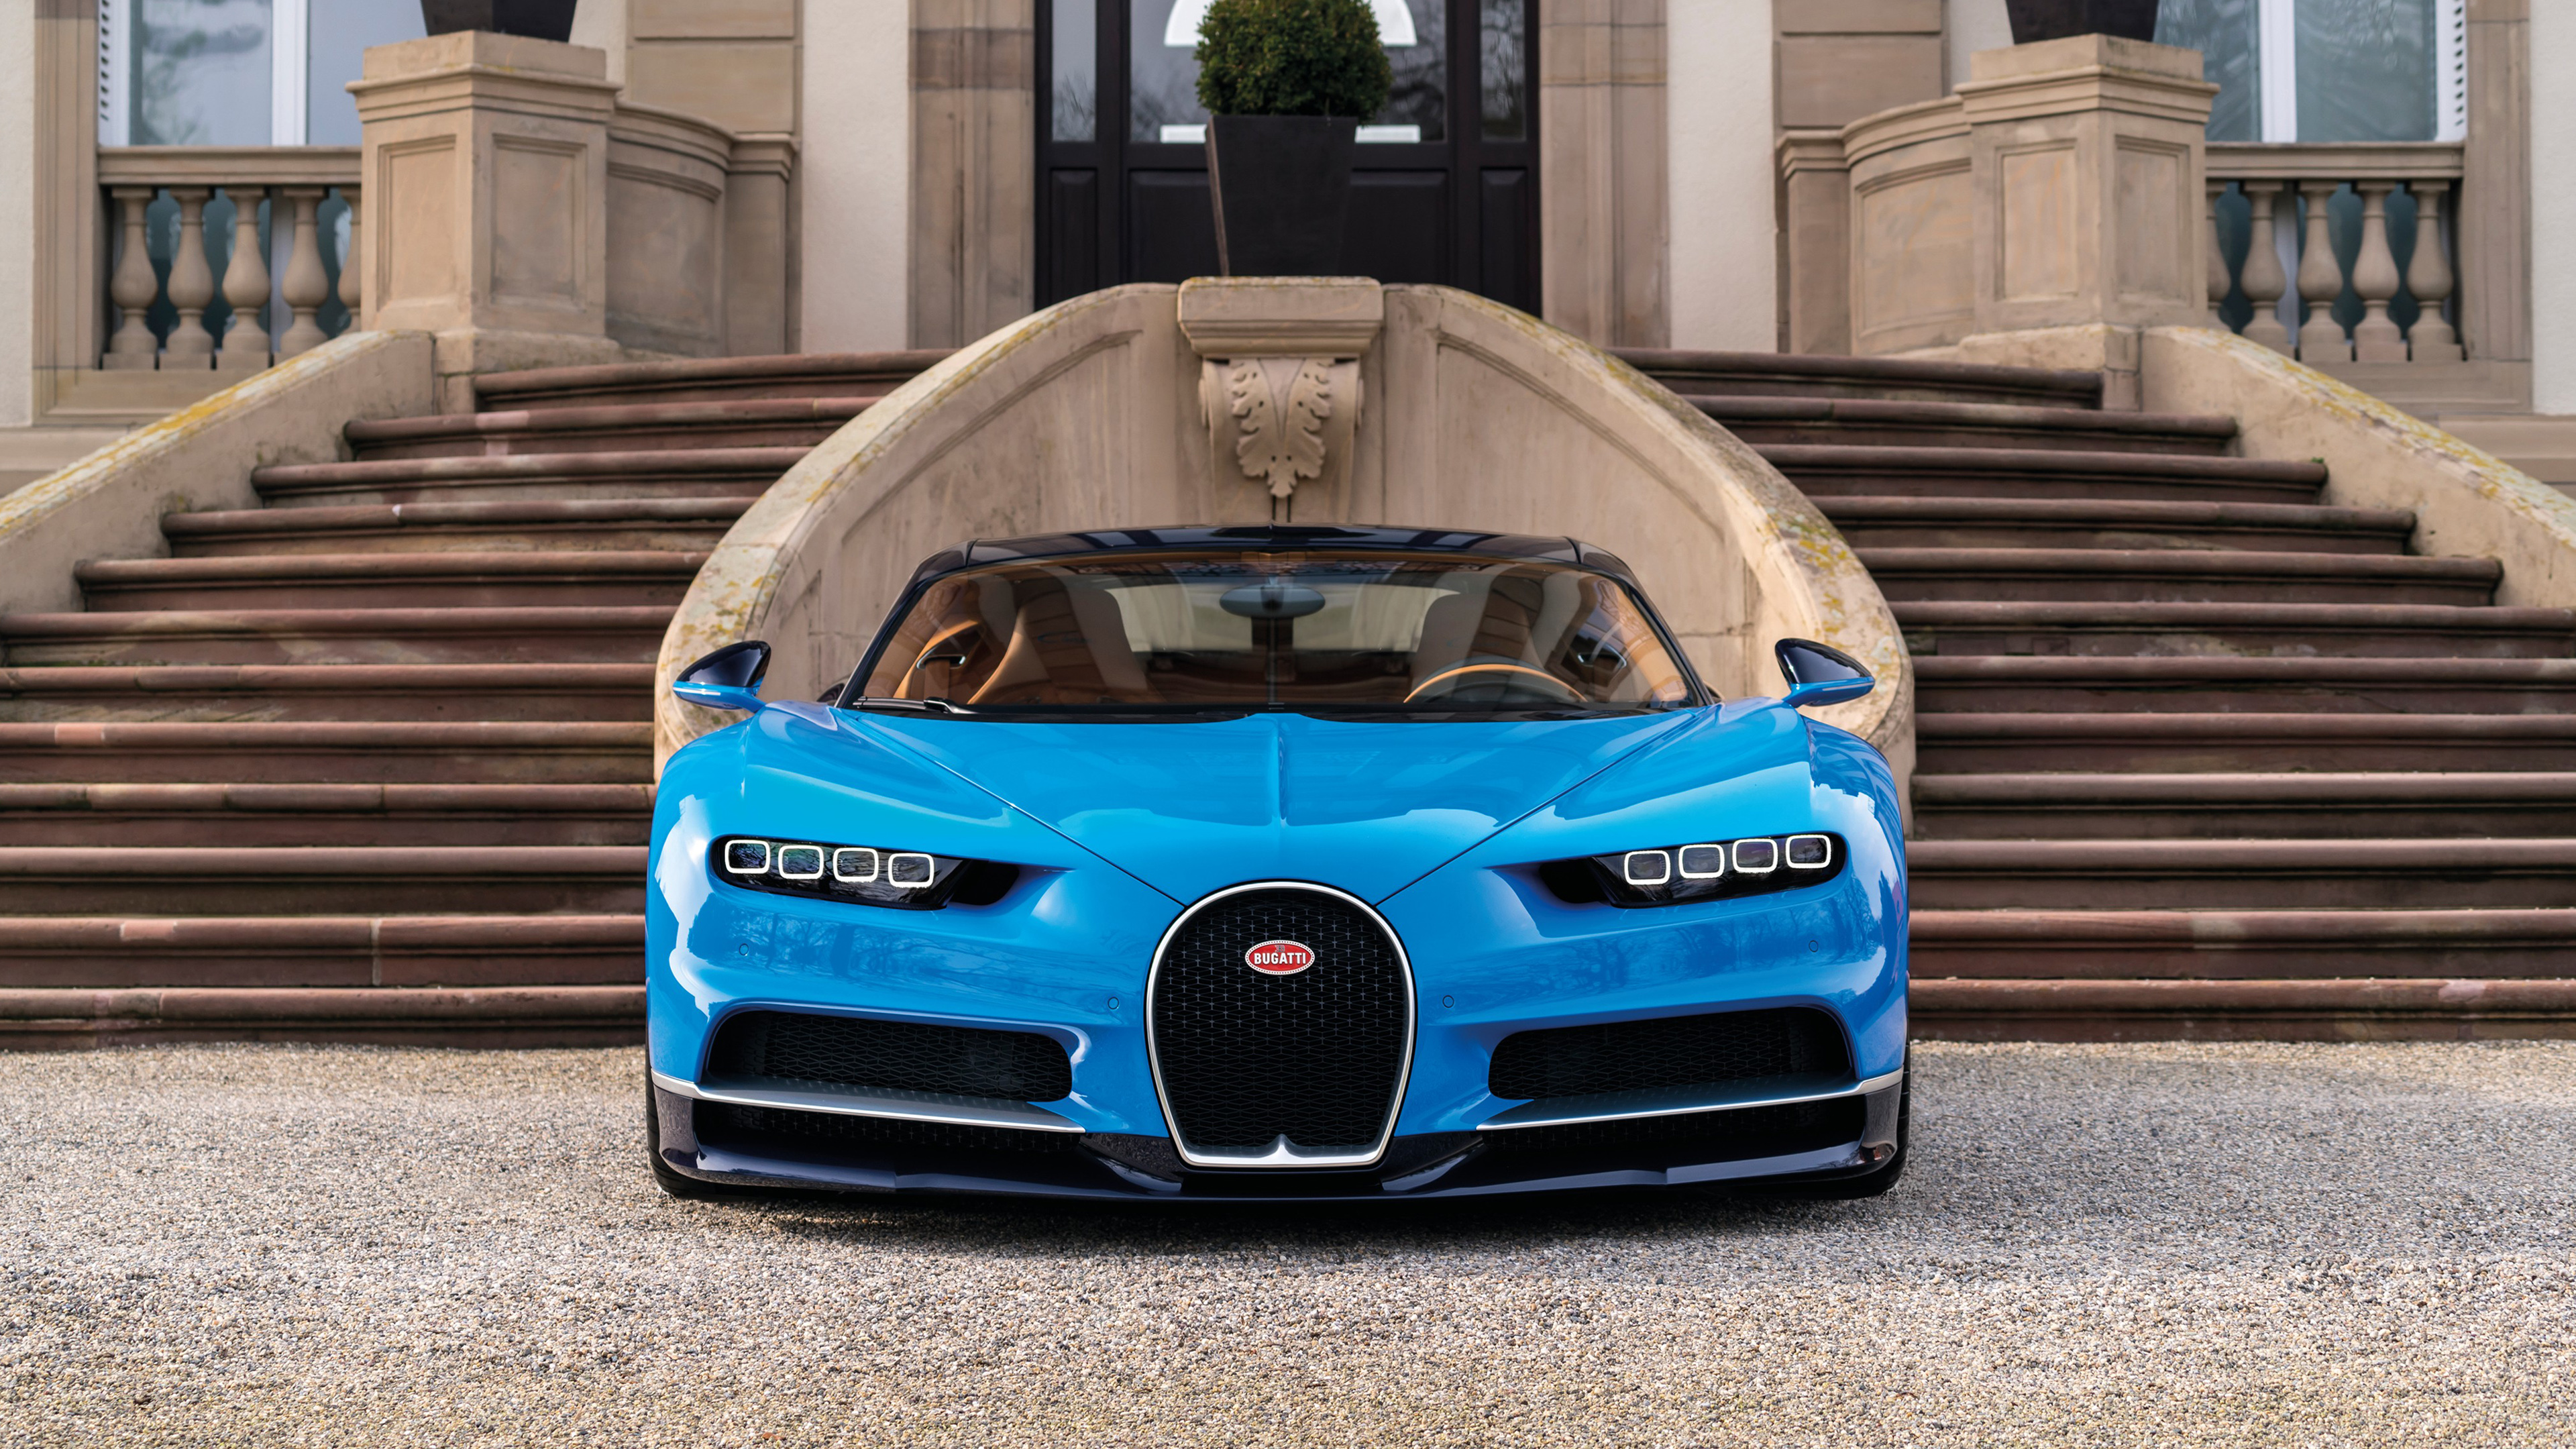 2017 Bugatti Chiron 3 Wallpaper Hd Car Wallpapers Id 6281